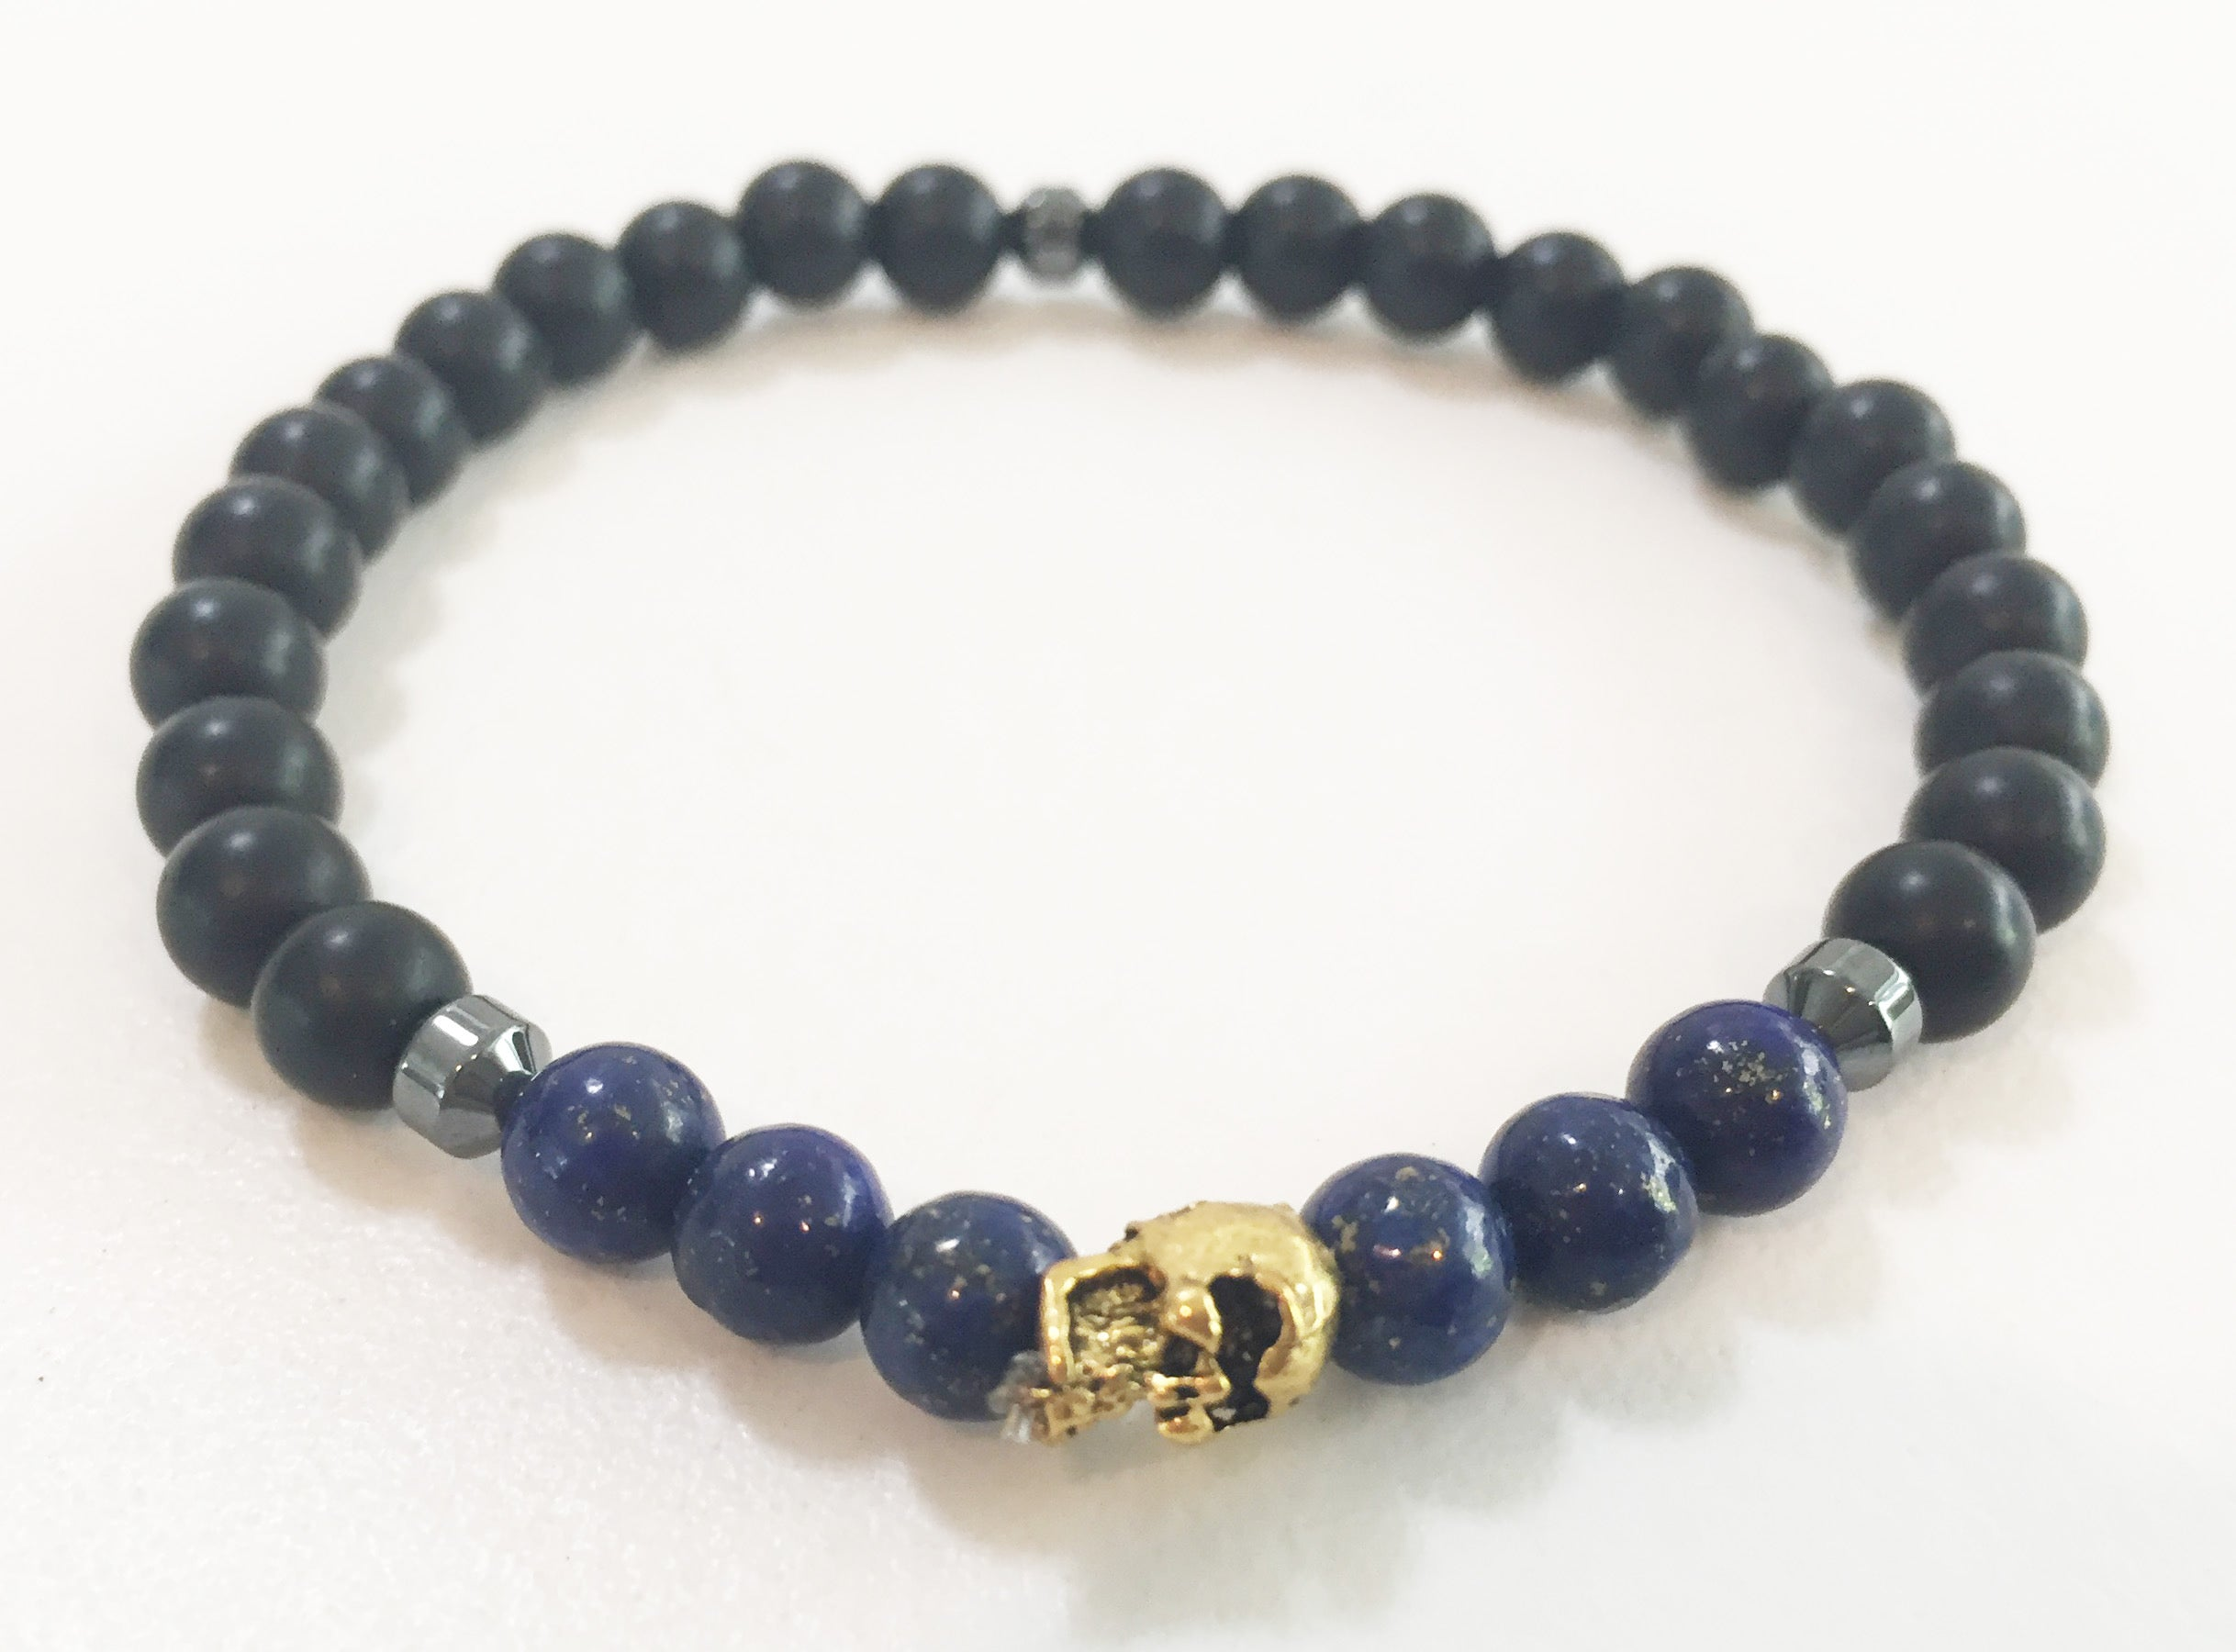 6mm Matte Obsidian & Lapis Lazuli Stretch Bracelet with Skull